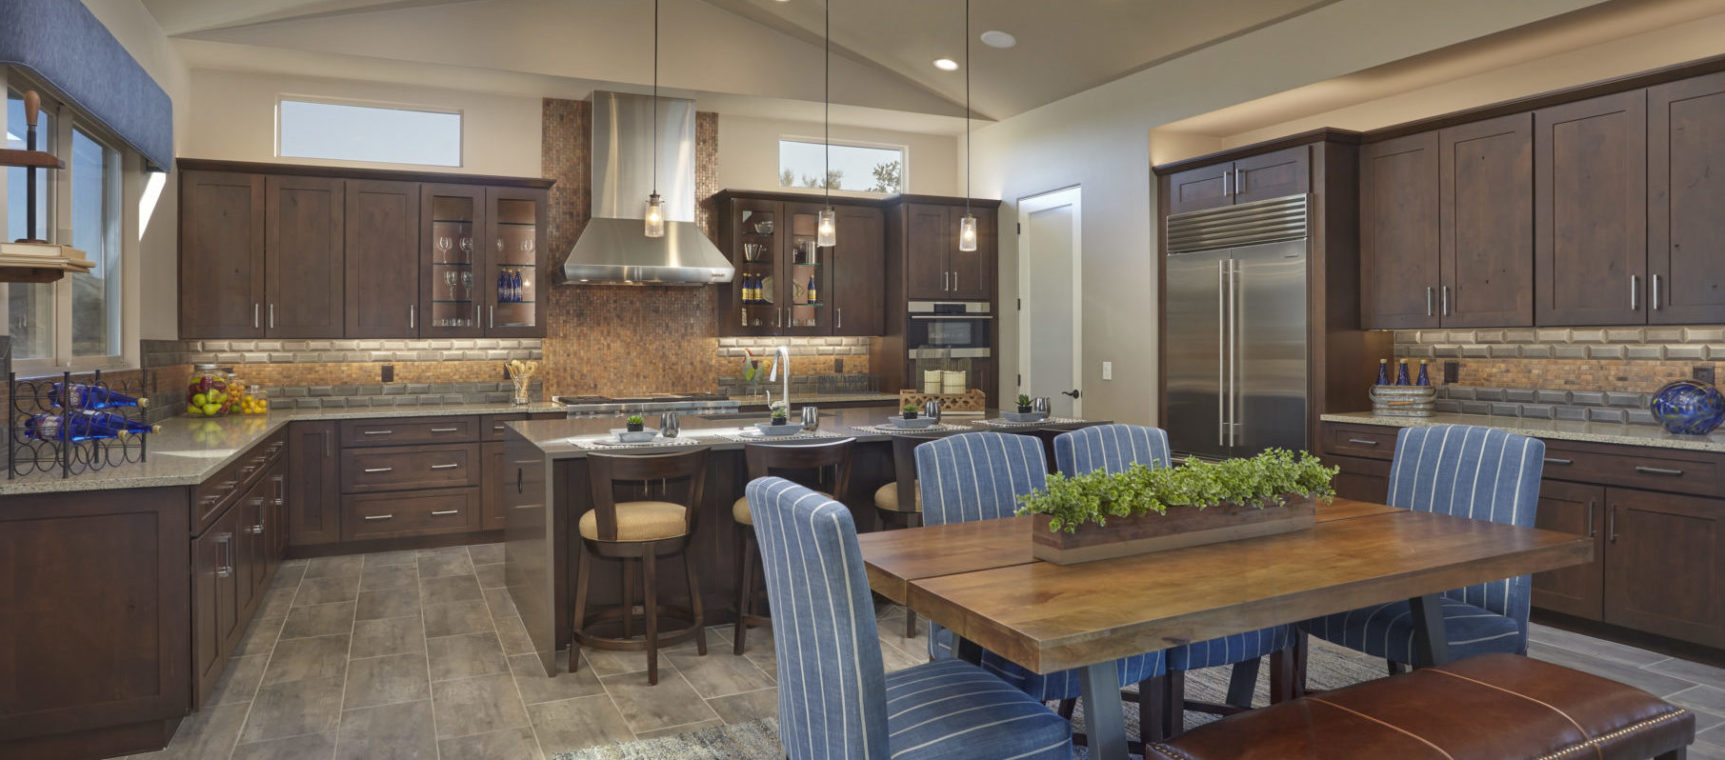 Interior design firms tucson in design commercial for Model home interior design firms